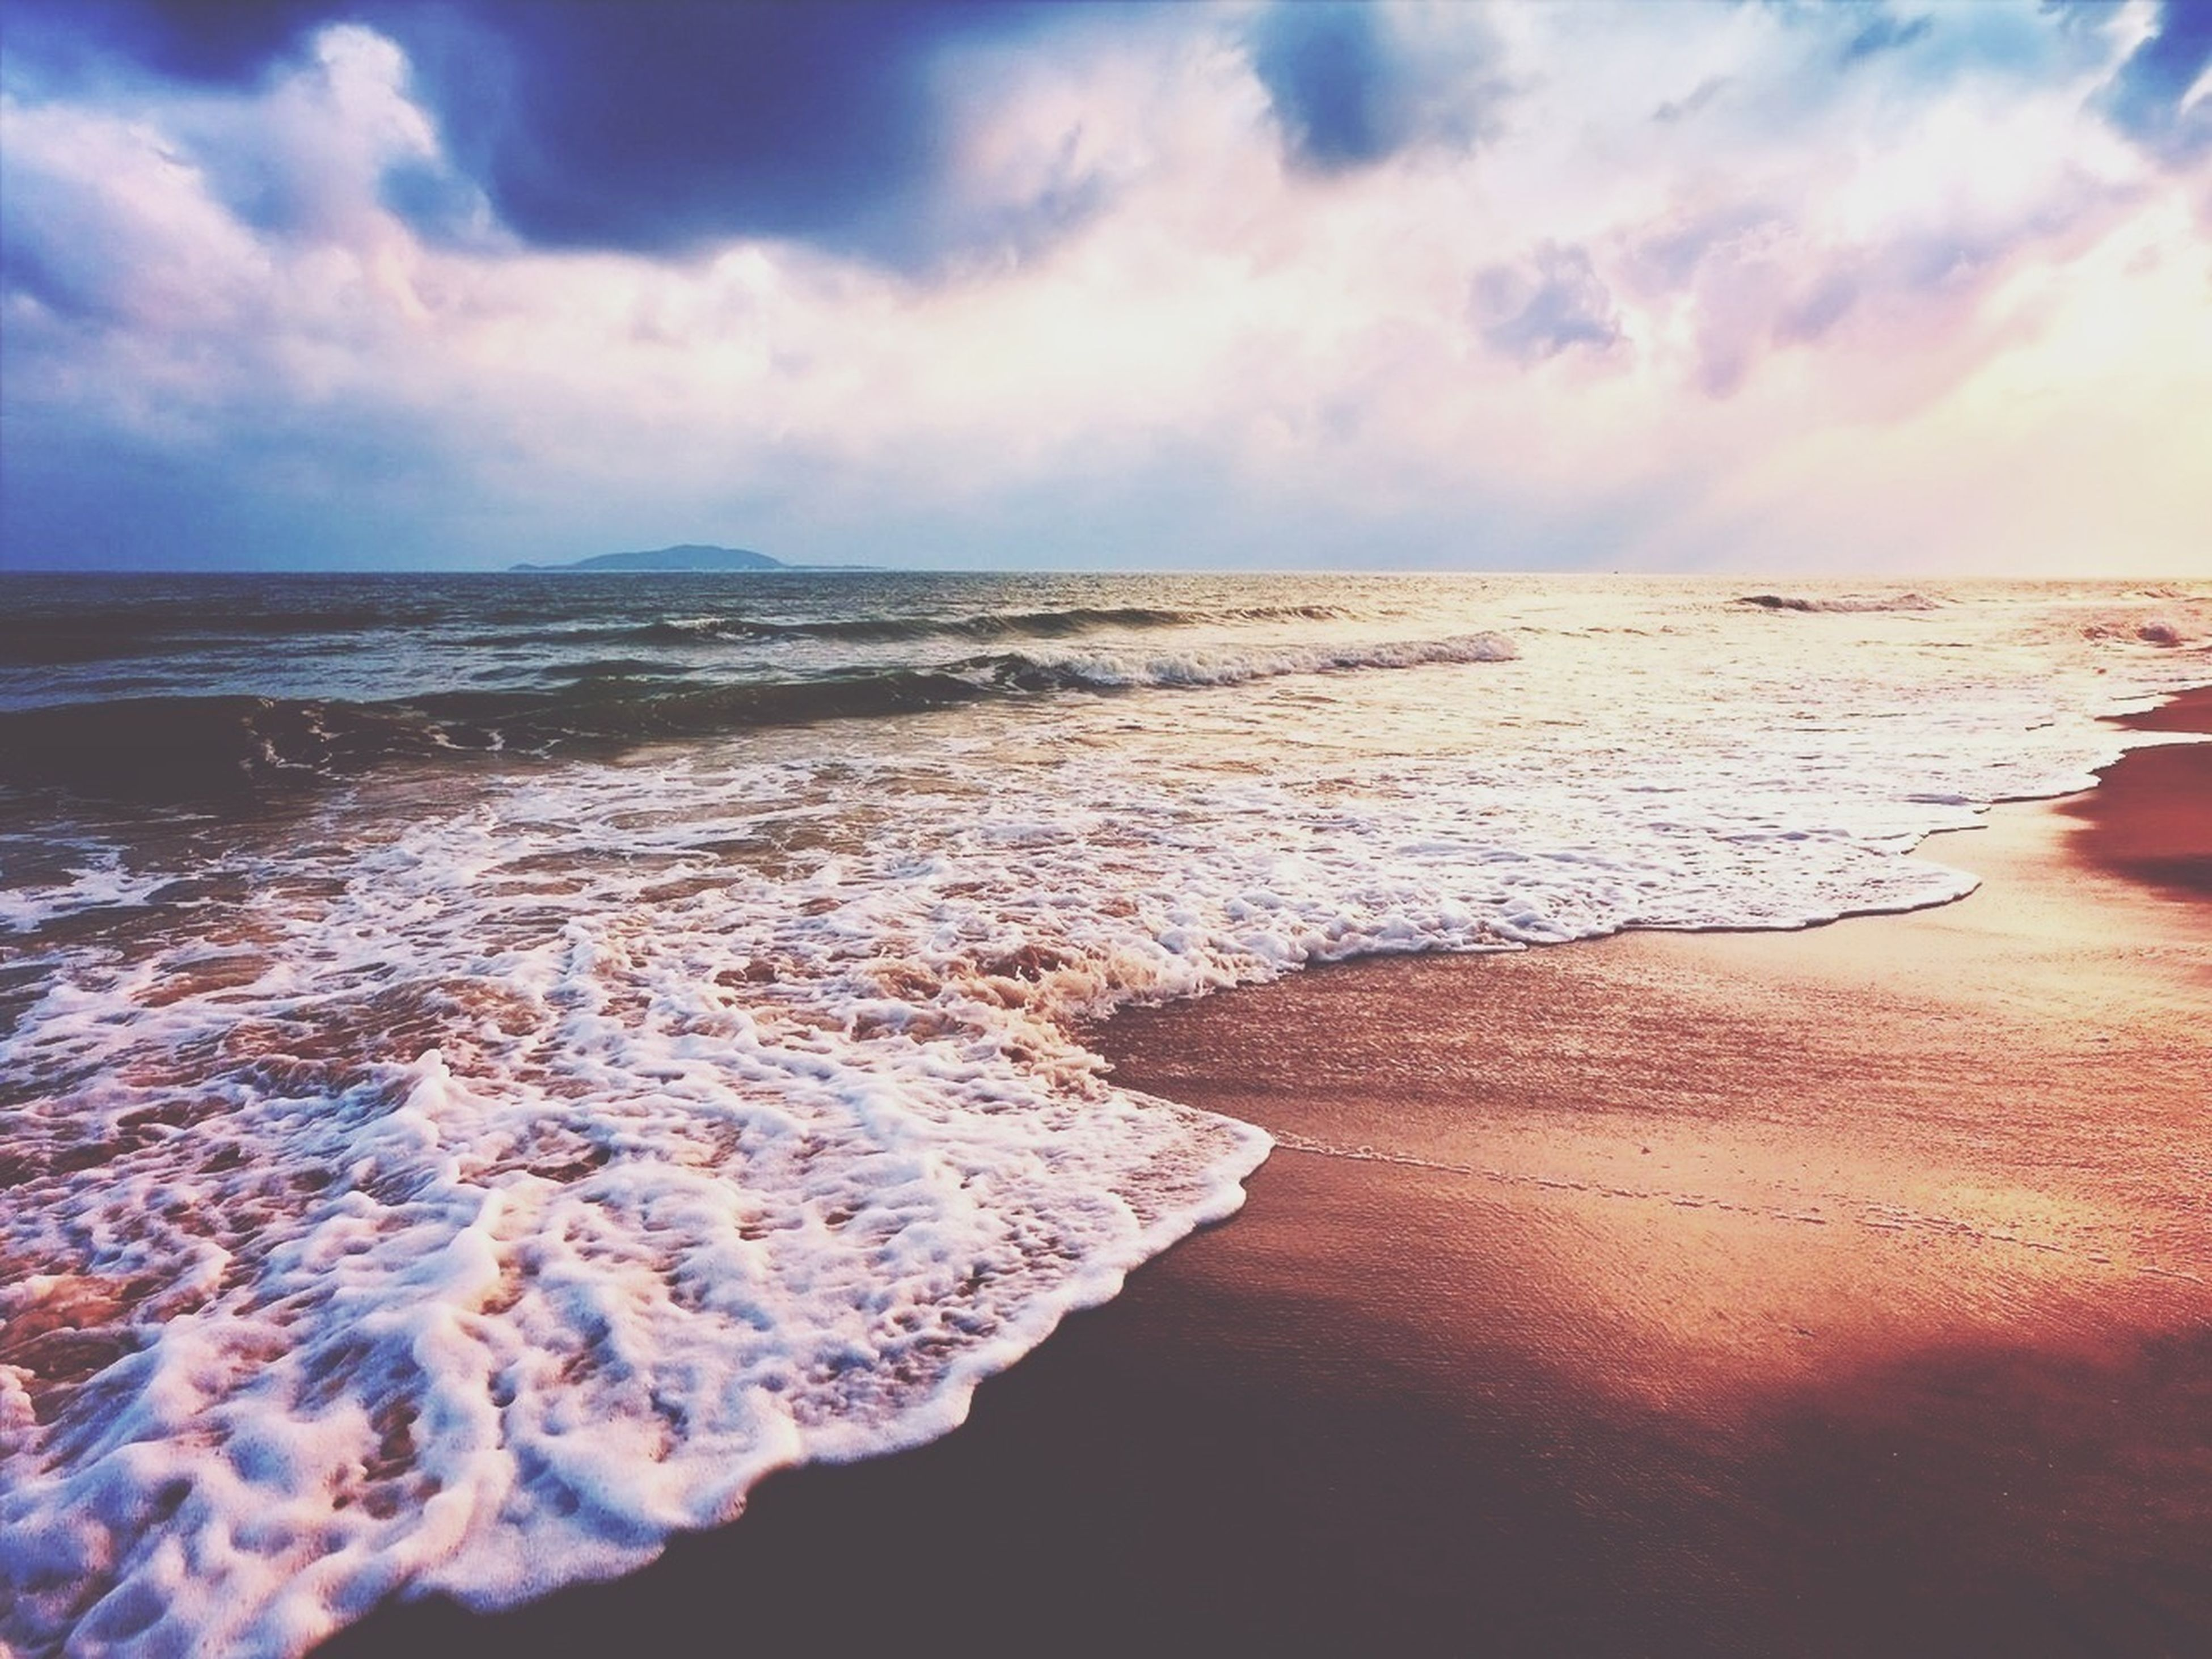 sea, sky, water, beach, tranquil scene, tranquility, cloud - sky, horizon over water, scenics, beauty in nature, shore, nature, cloudy, cloud, sand, idyllic, remote, sunset, calm, outdoors